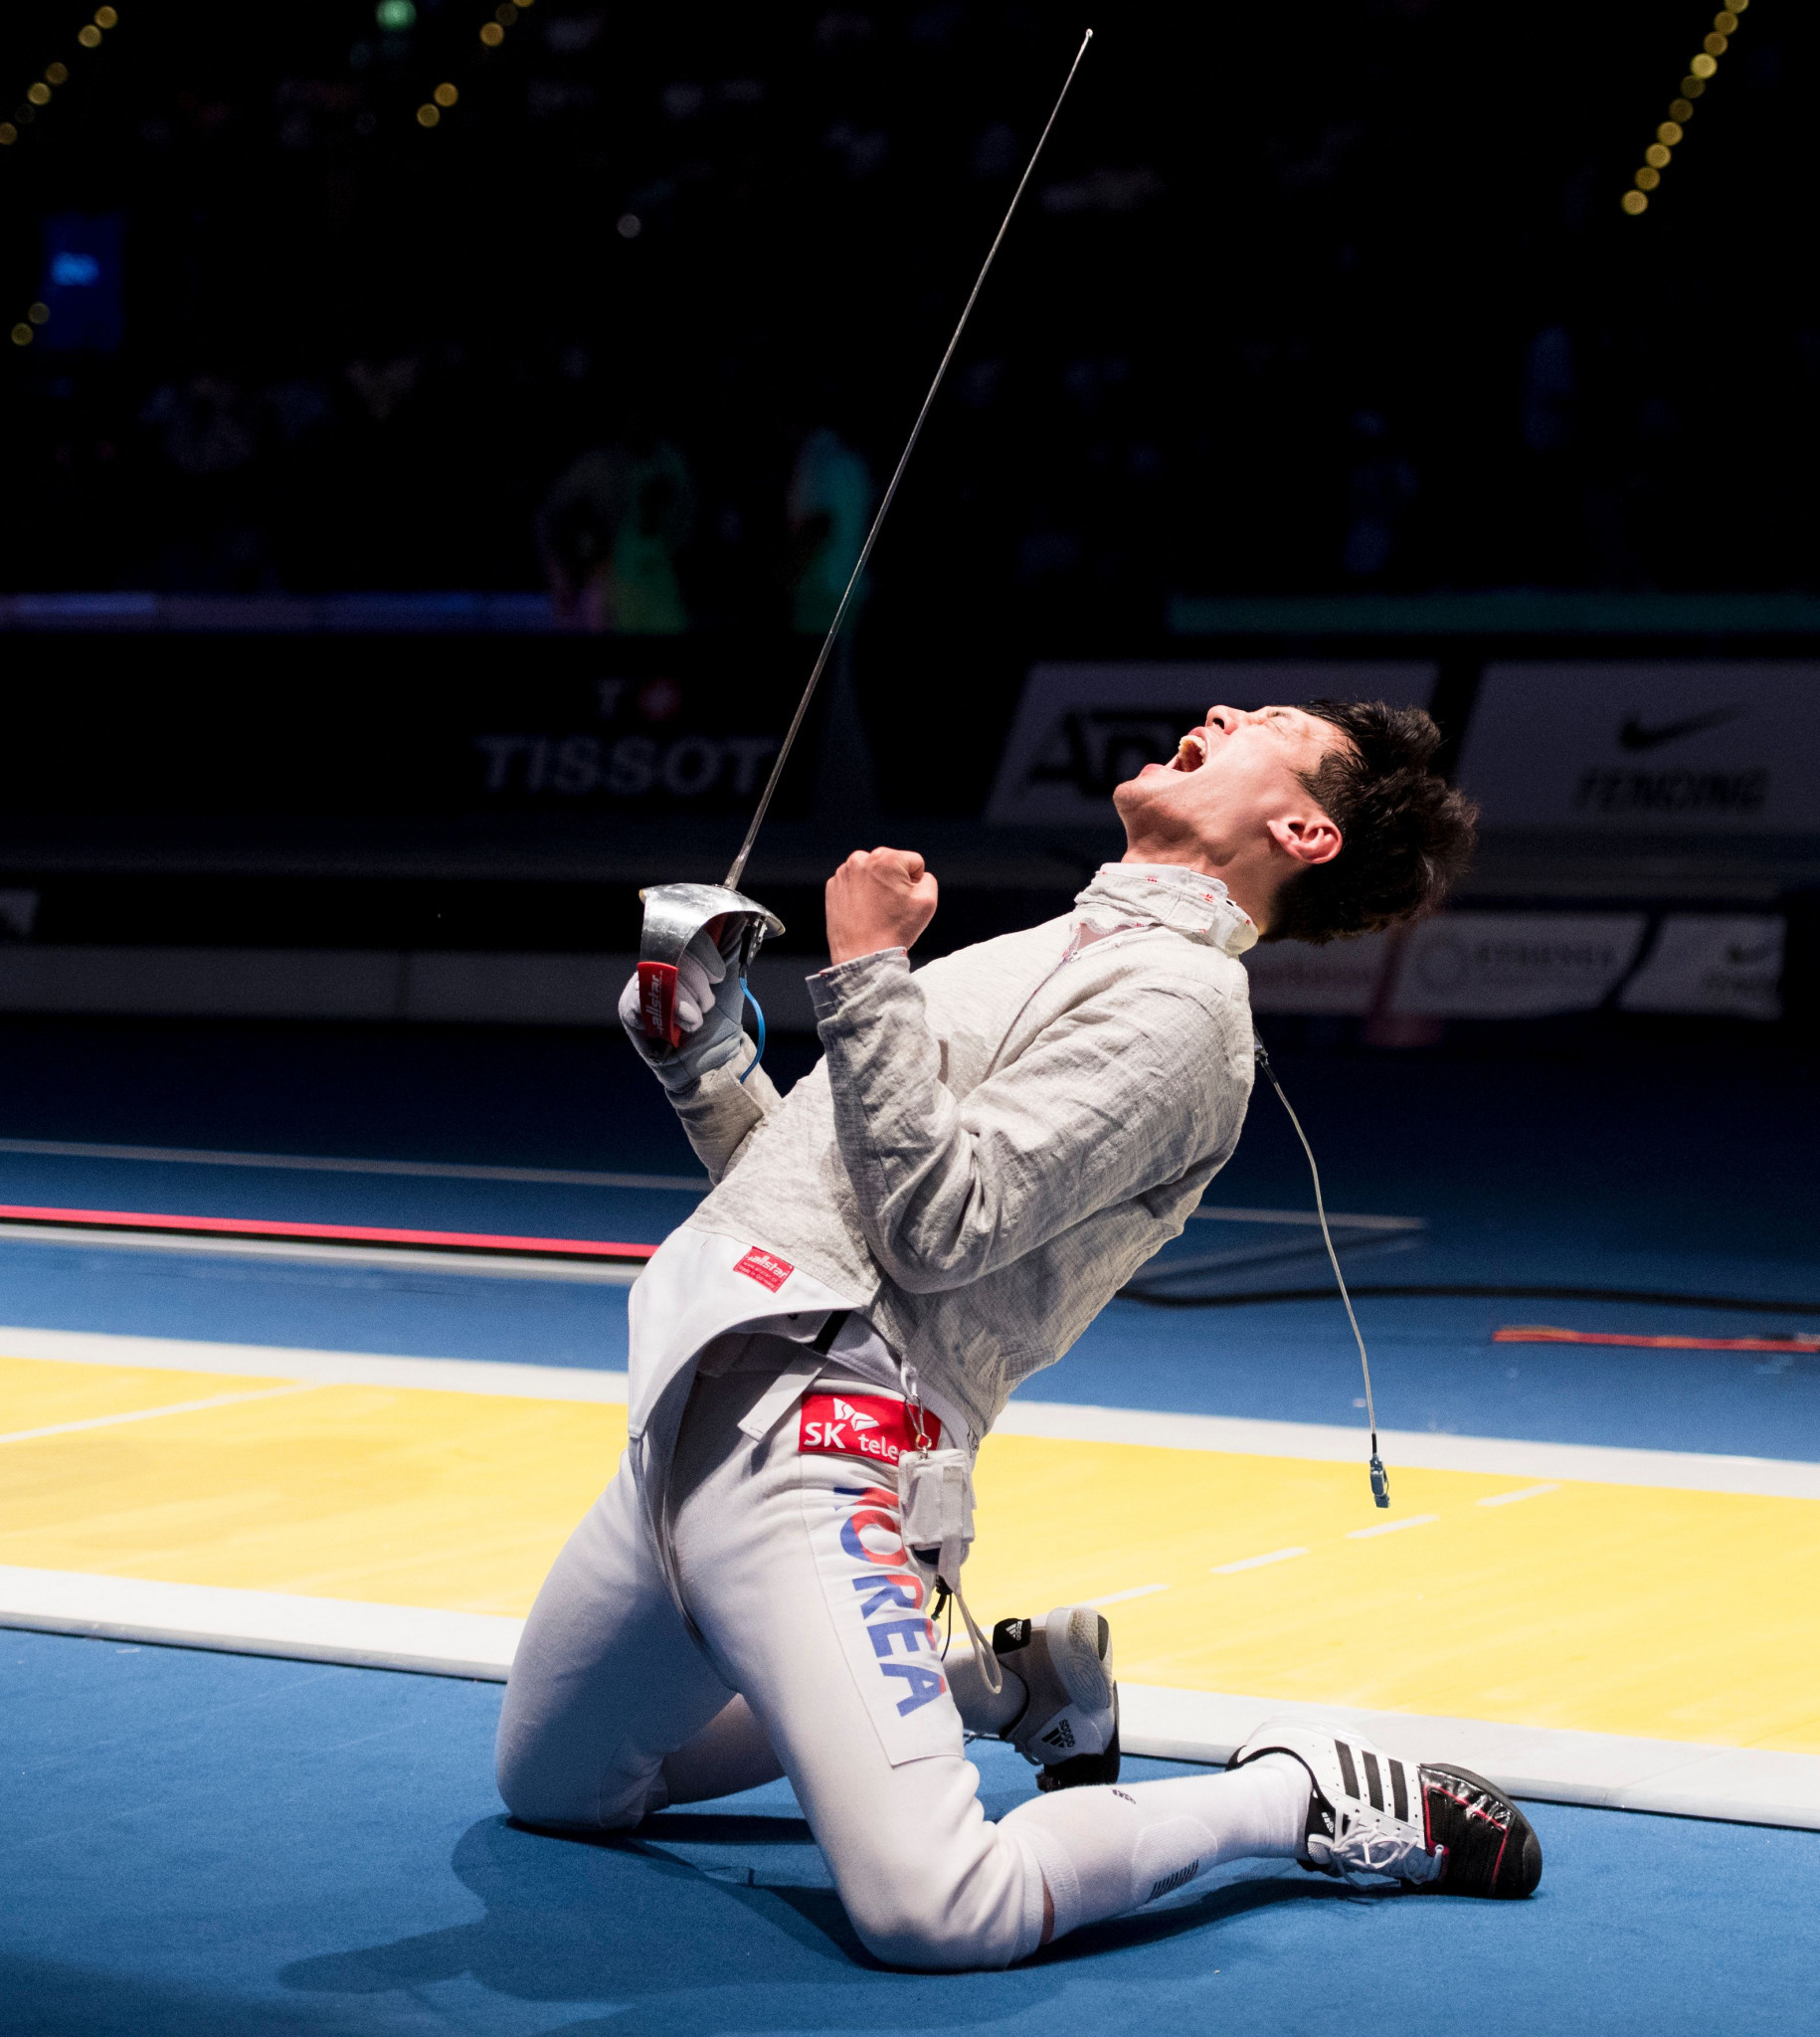 Gu leads star-studded field for FIE Sabre Grand Prix in Moscow